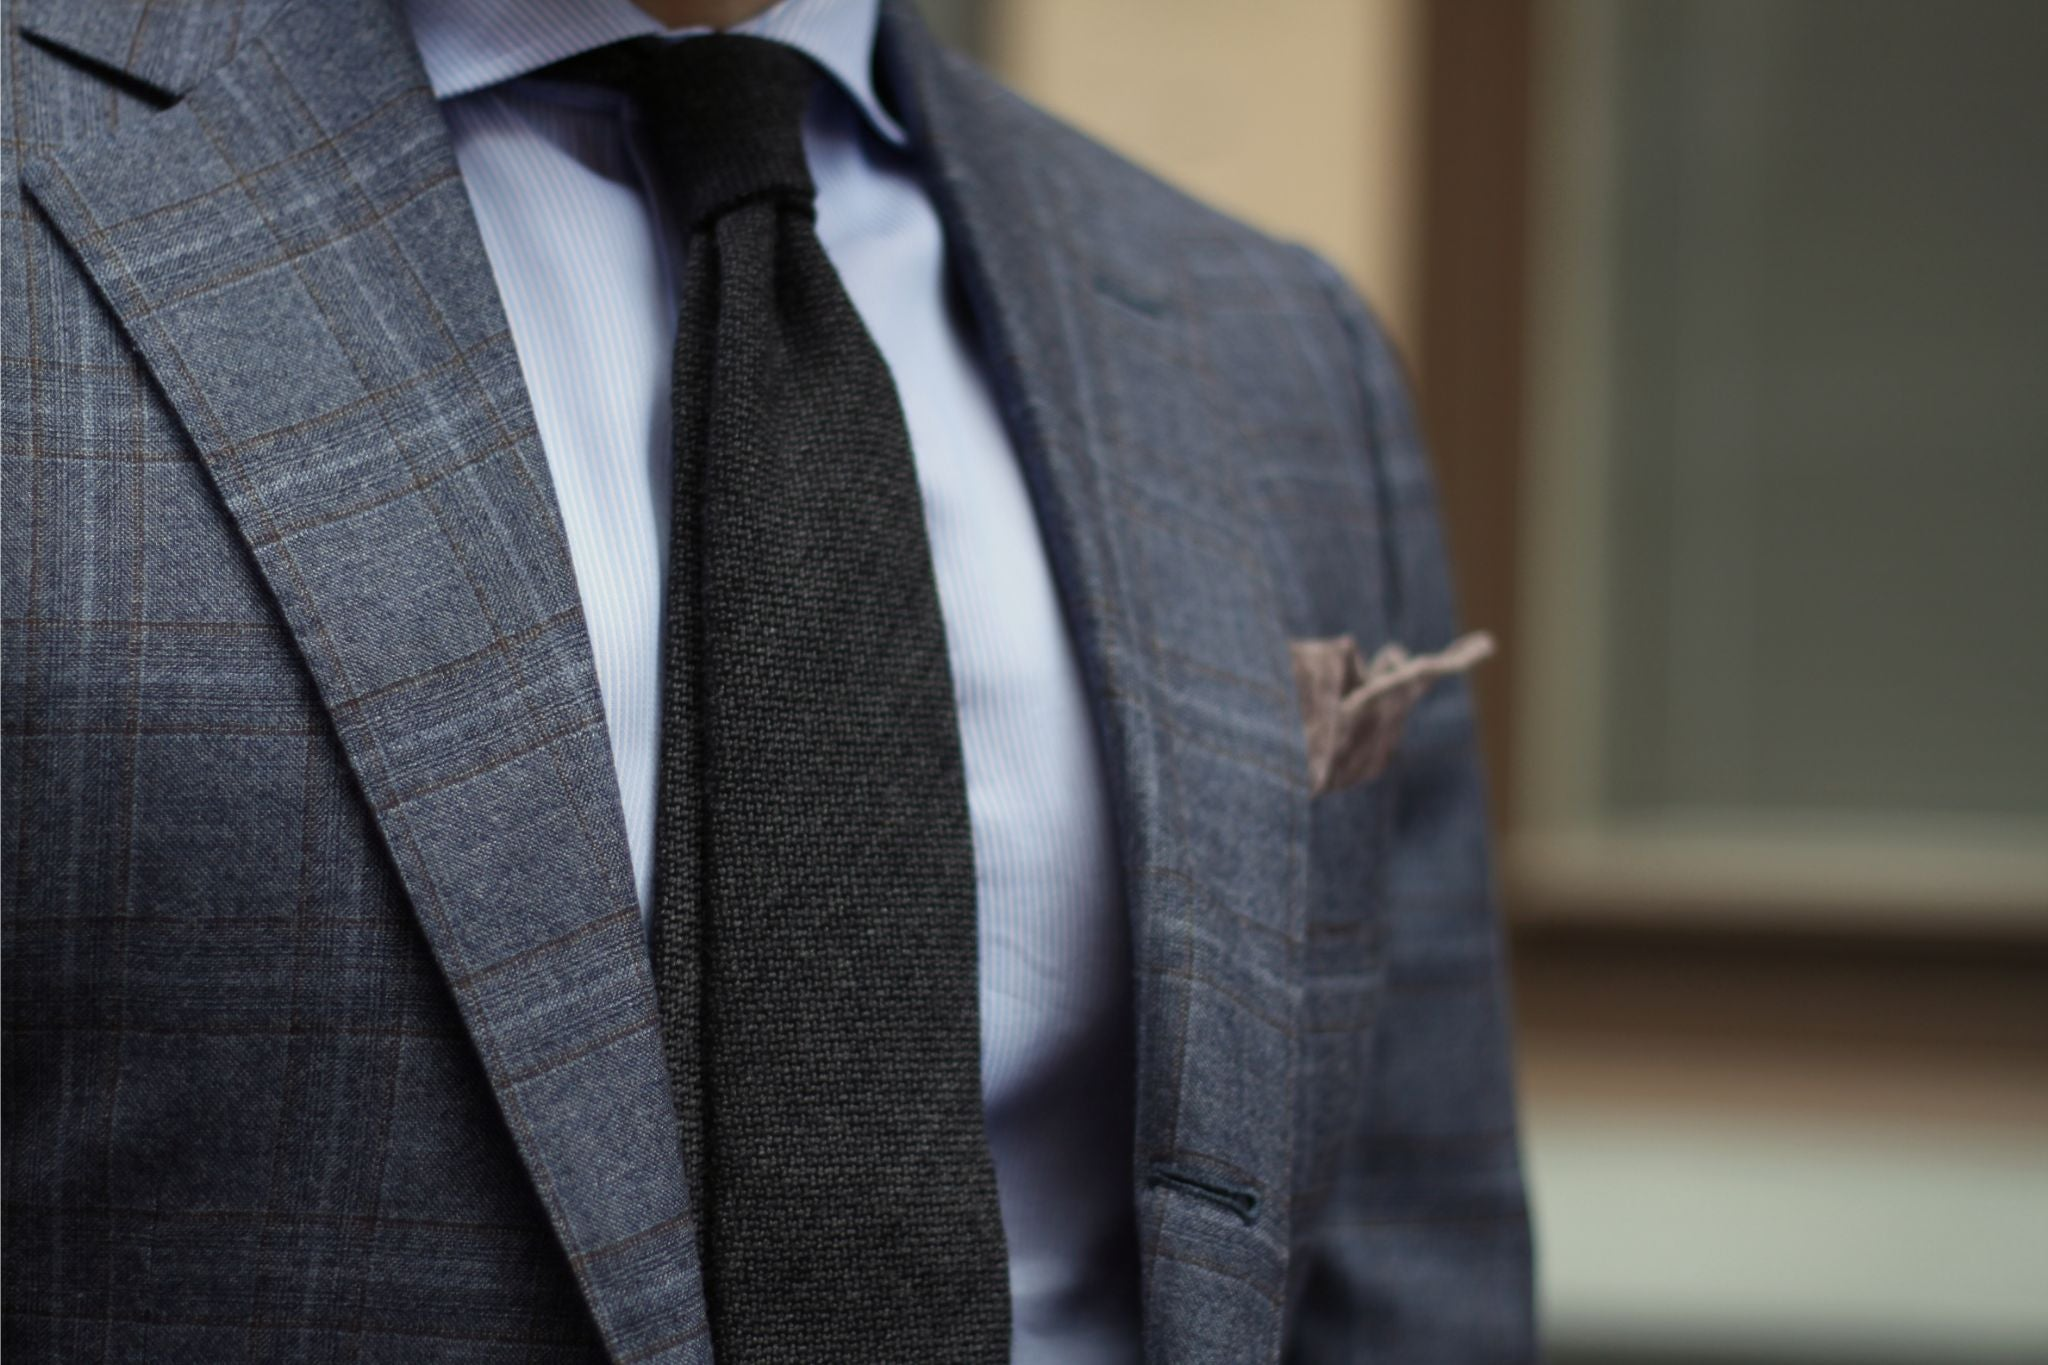 Dark gray tie with business suit - textures of gray cashmere tie